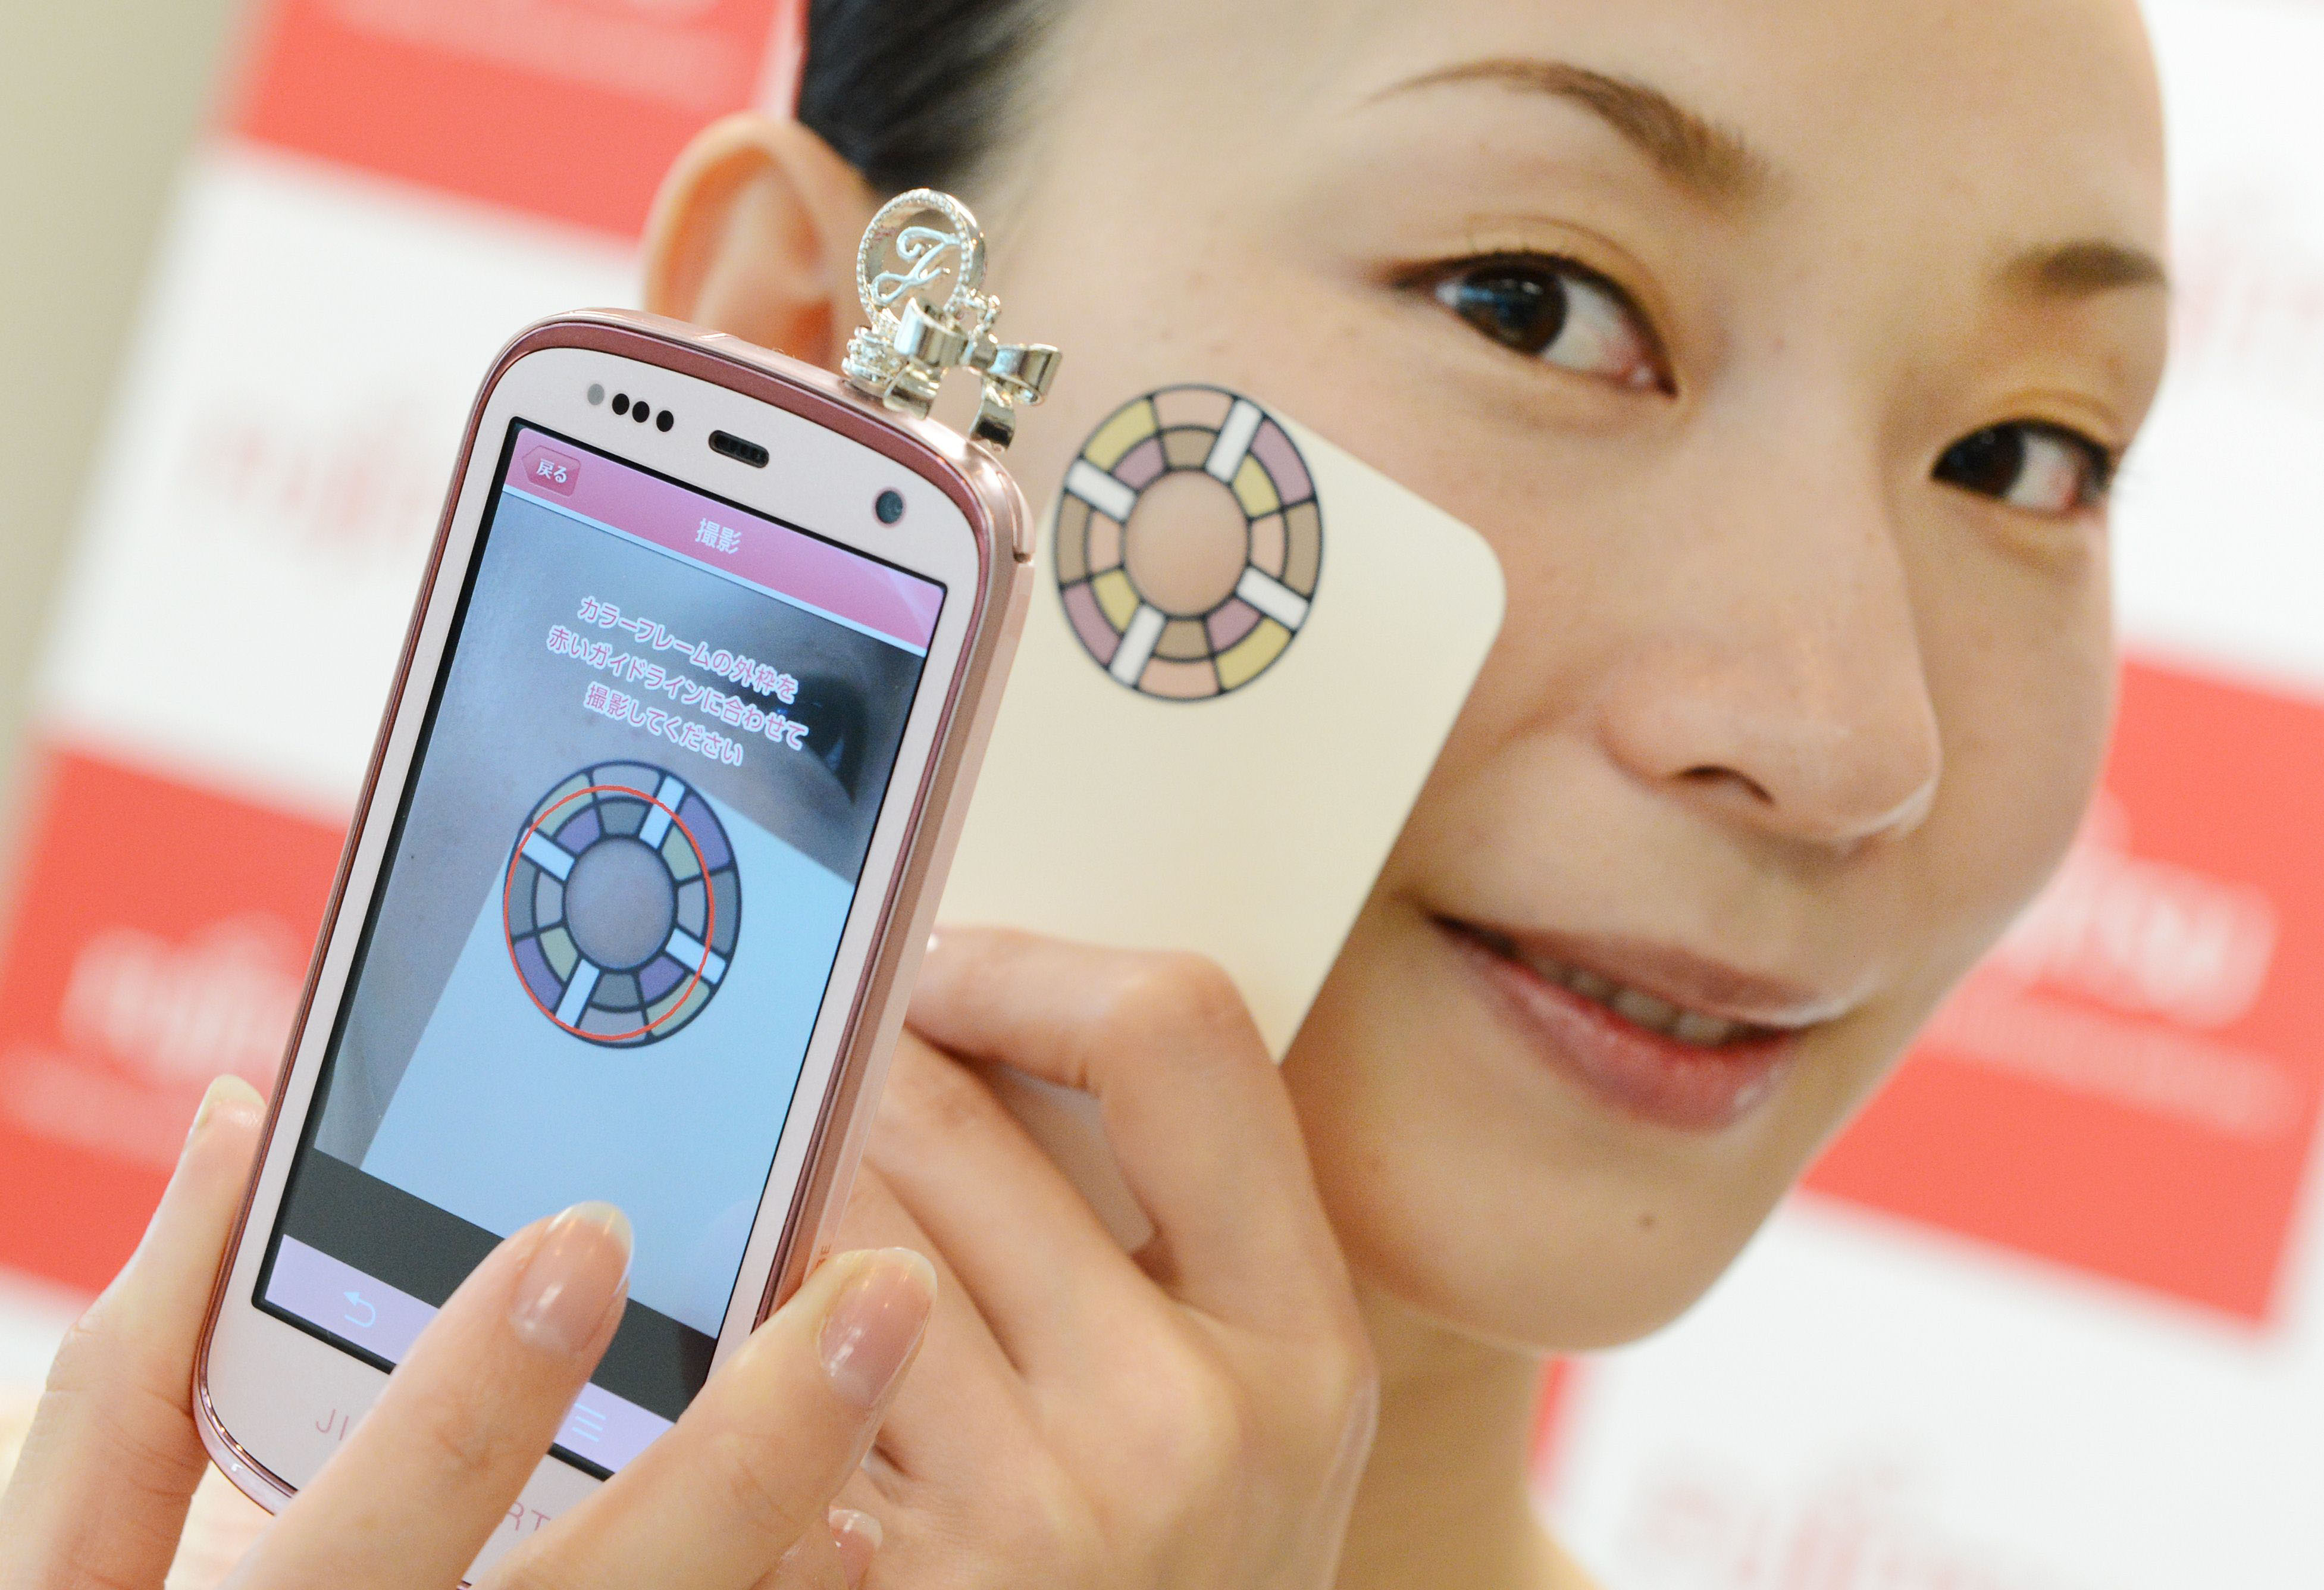 Fujitsu unveils smartphone to gauge skin condition